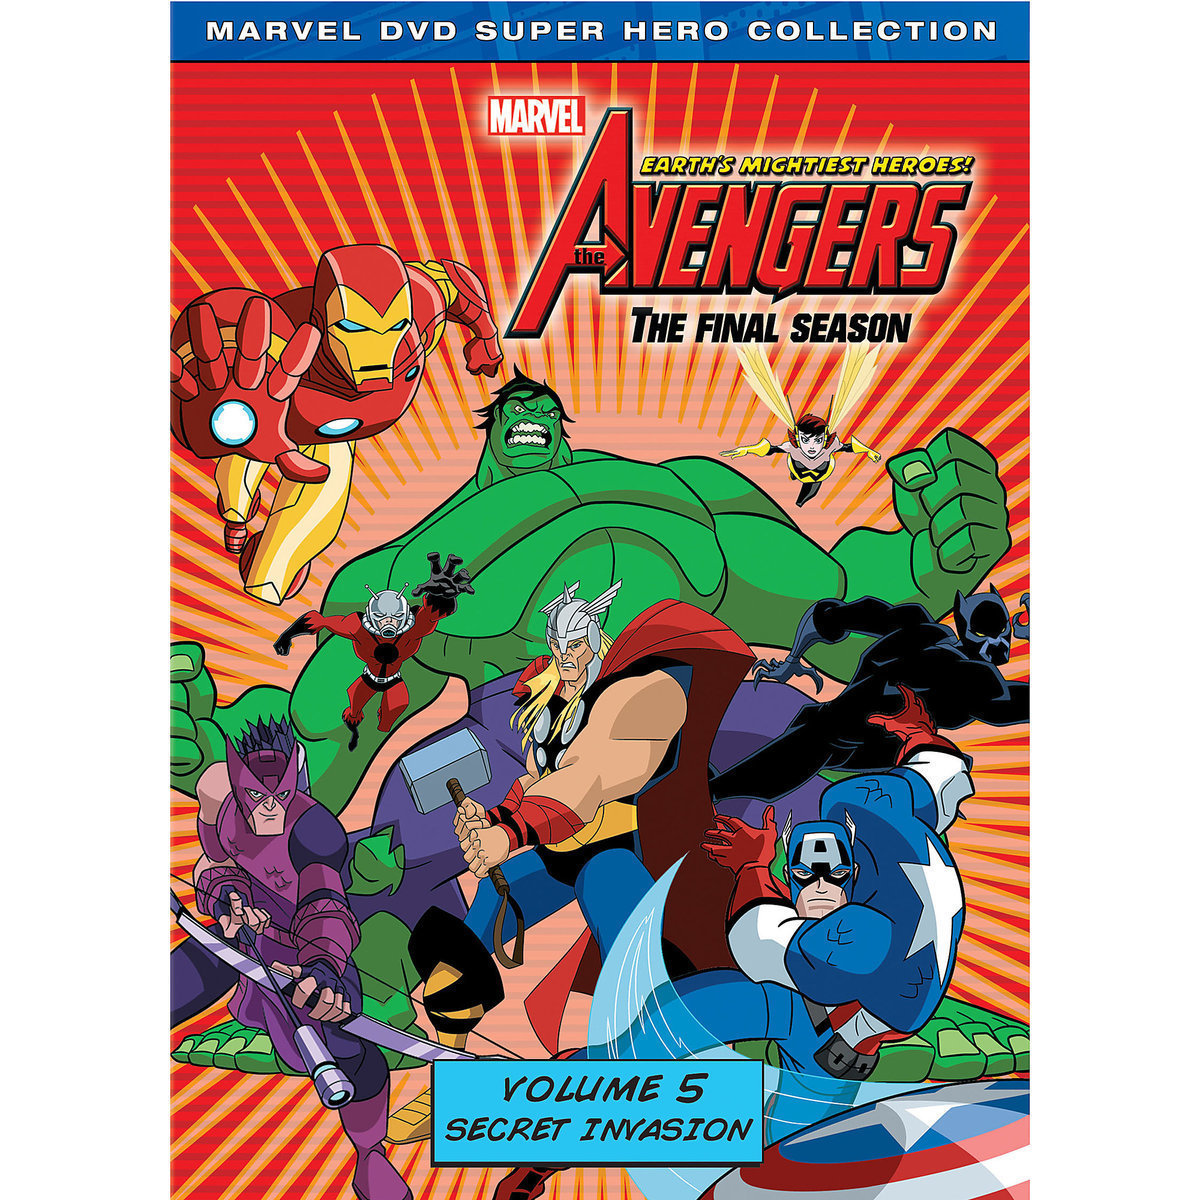 Marvel's The Avengers: Earth's Mightiest Heroes DVD Volume